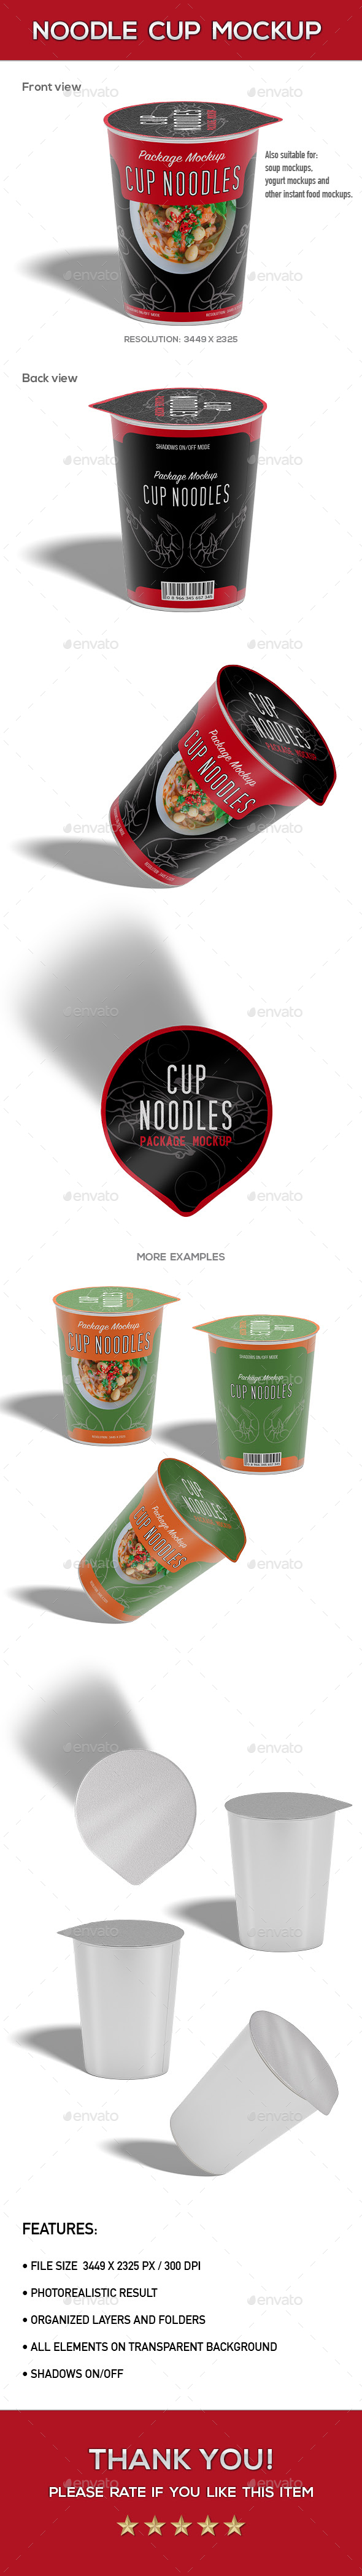 Noodle Cup Package Mock-Up - Food and Drink Packaging